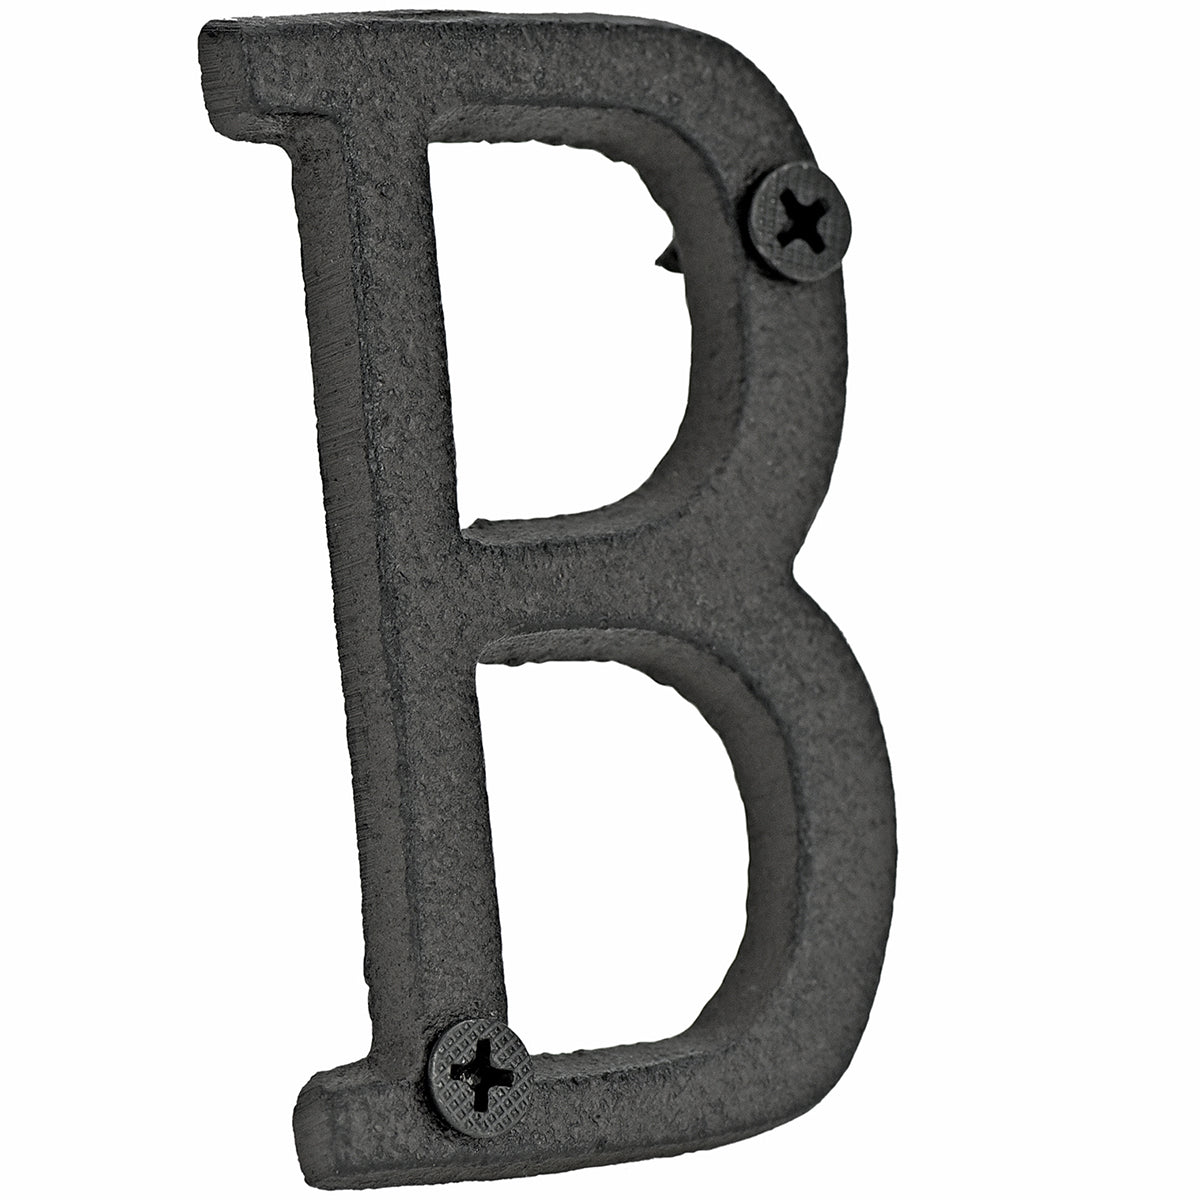 A cast iron house letter sign 'B' with white background